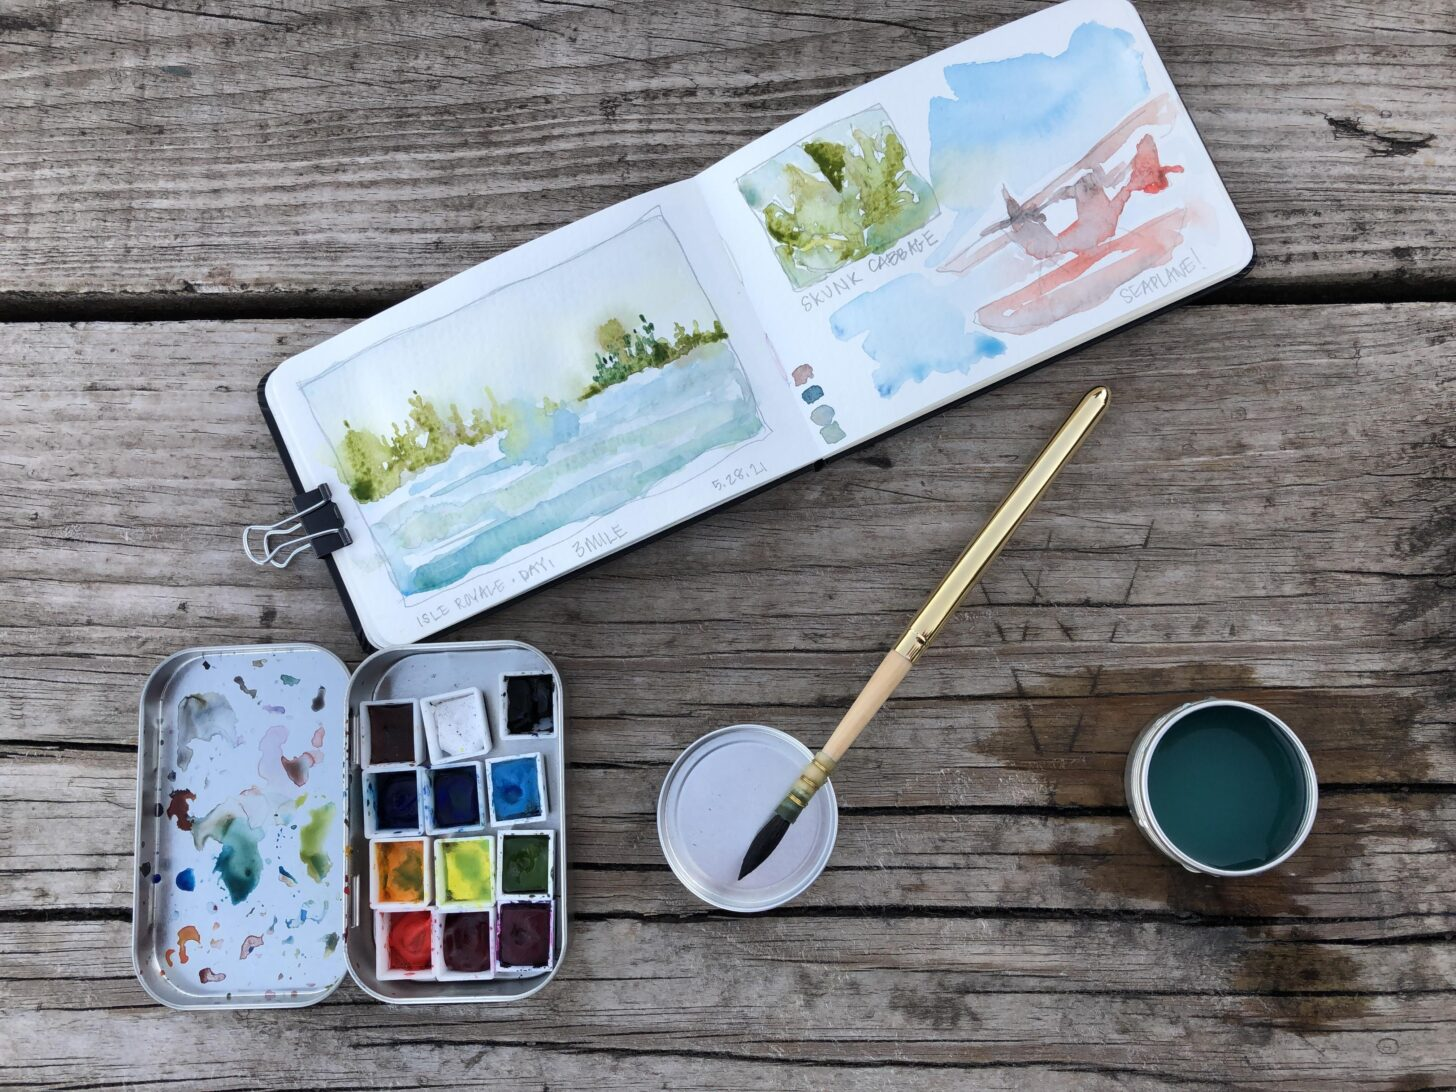 Watercolor paints with notebook